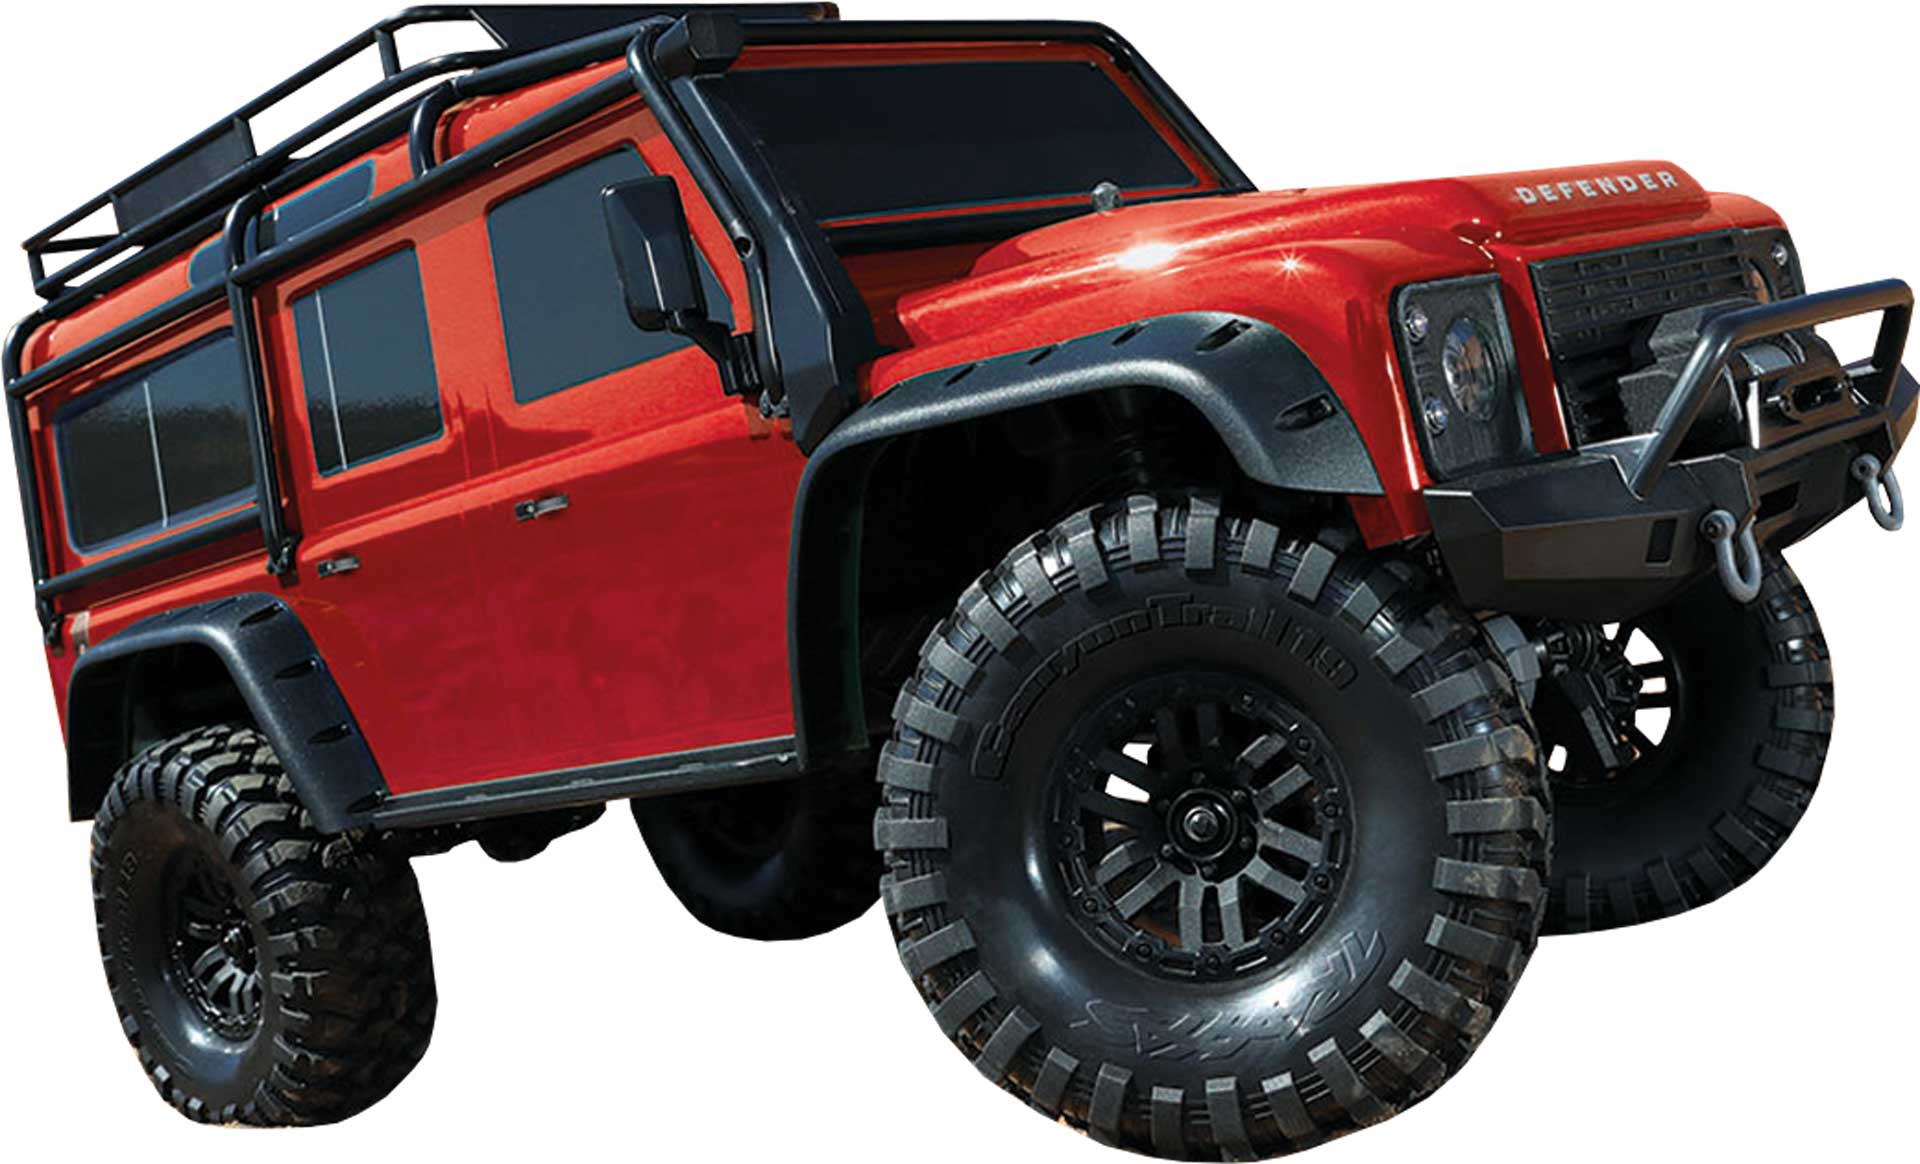 TRAXXAS TRX-4 LAND ROVER DEFENDER RTR 1710 4WD